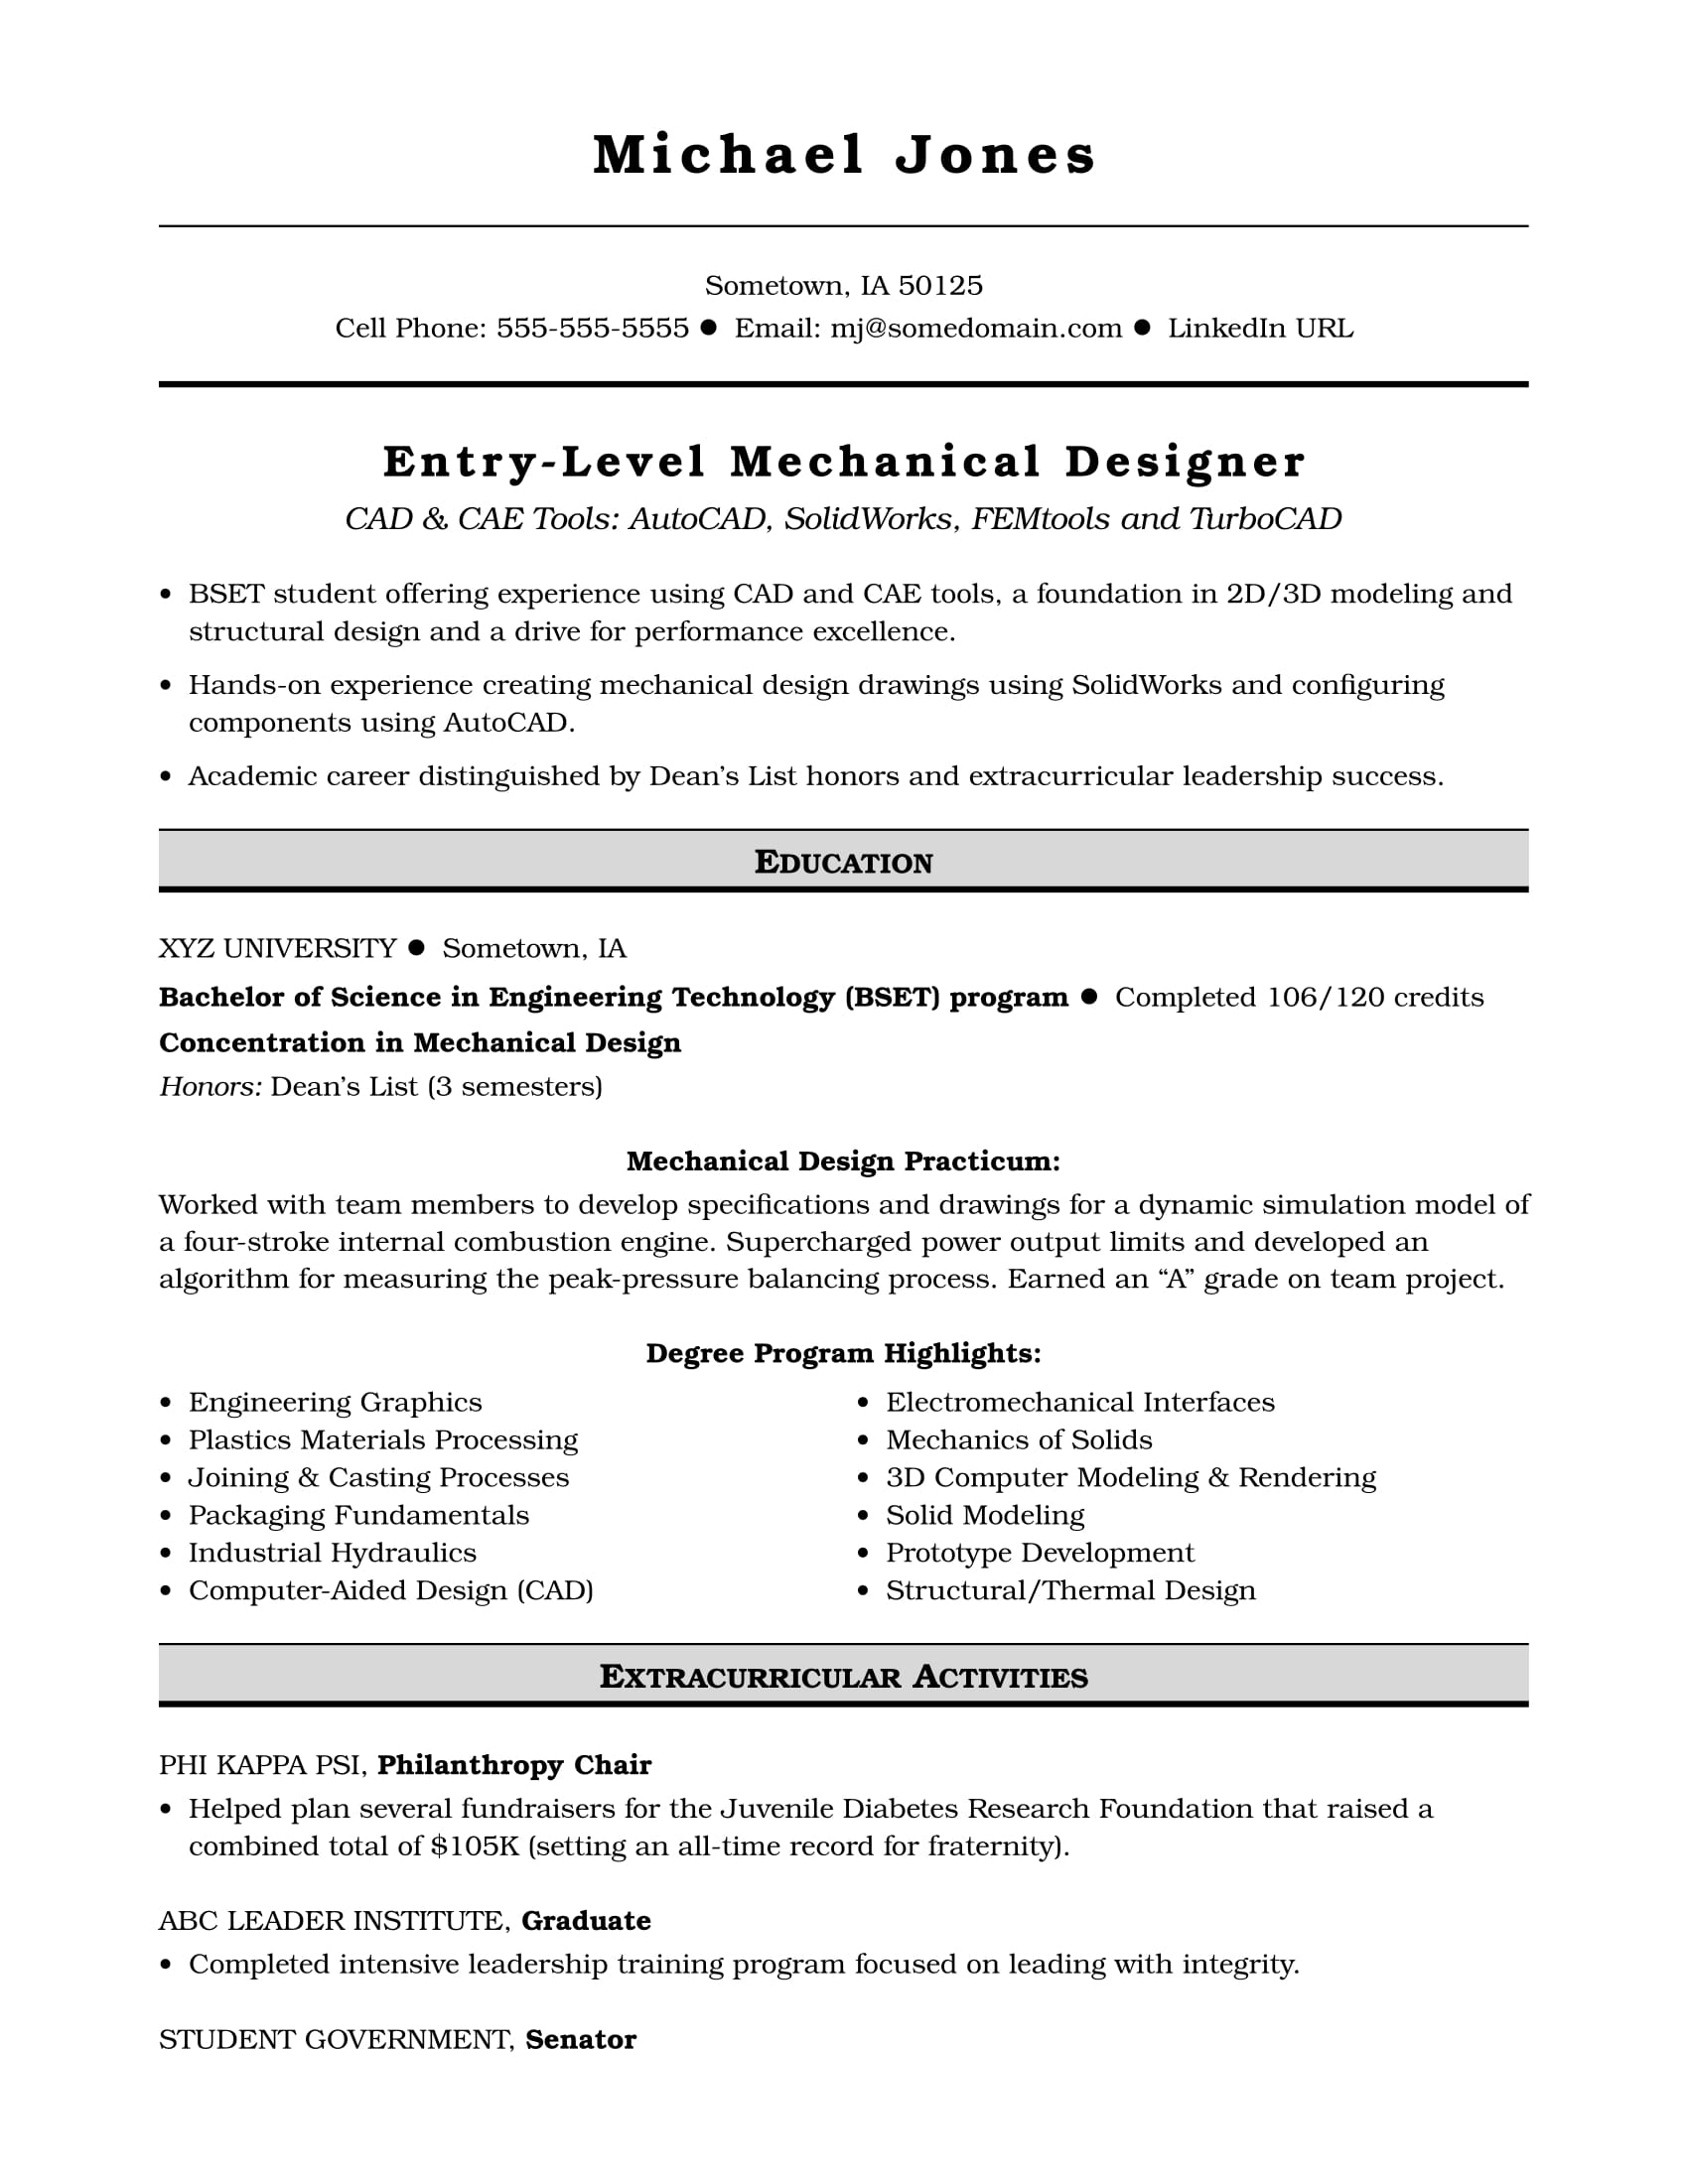 sample resume for an entry level mechanical designer monster engineering student Resume Entry Level Mechanical Engineering Resume